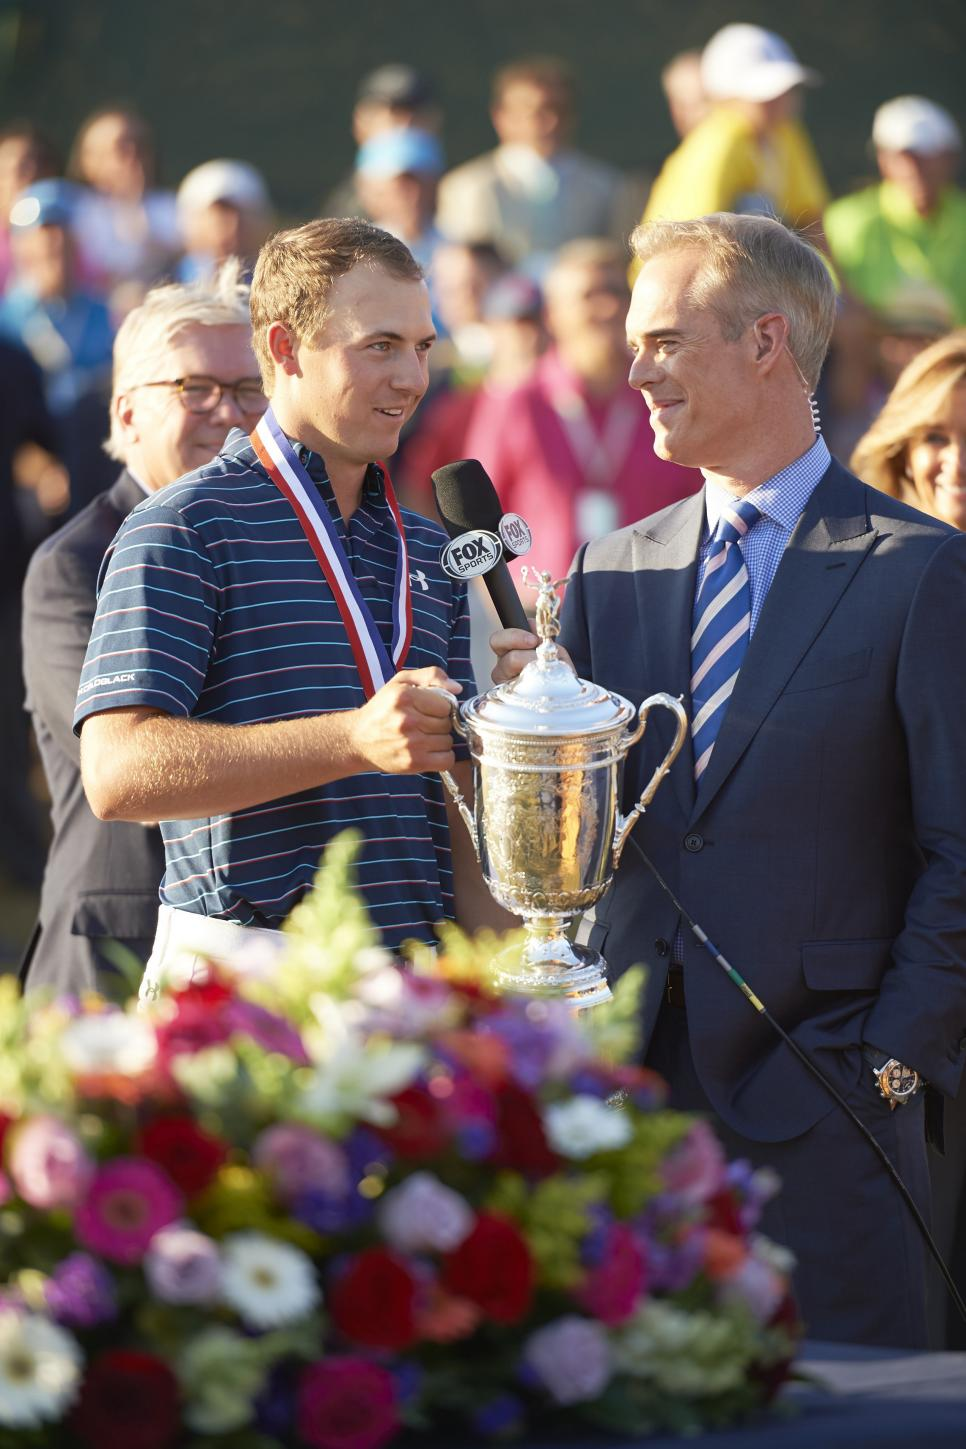 jordan-spieth-joe-buck-us-open-2015.jpg